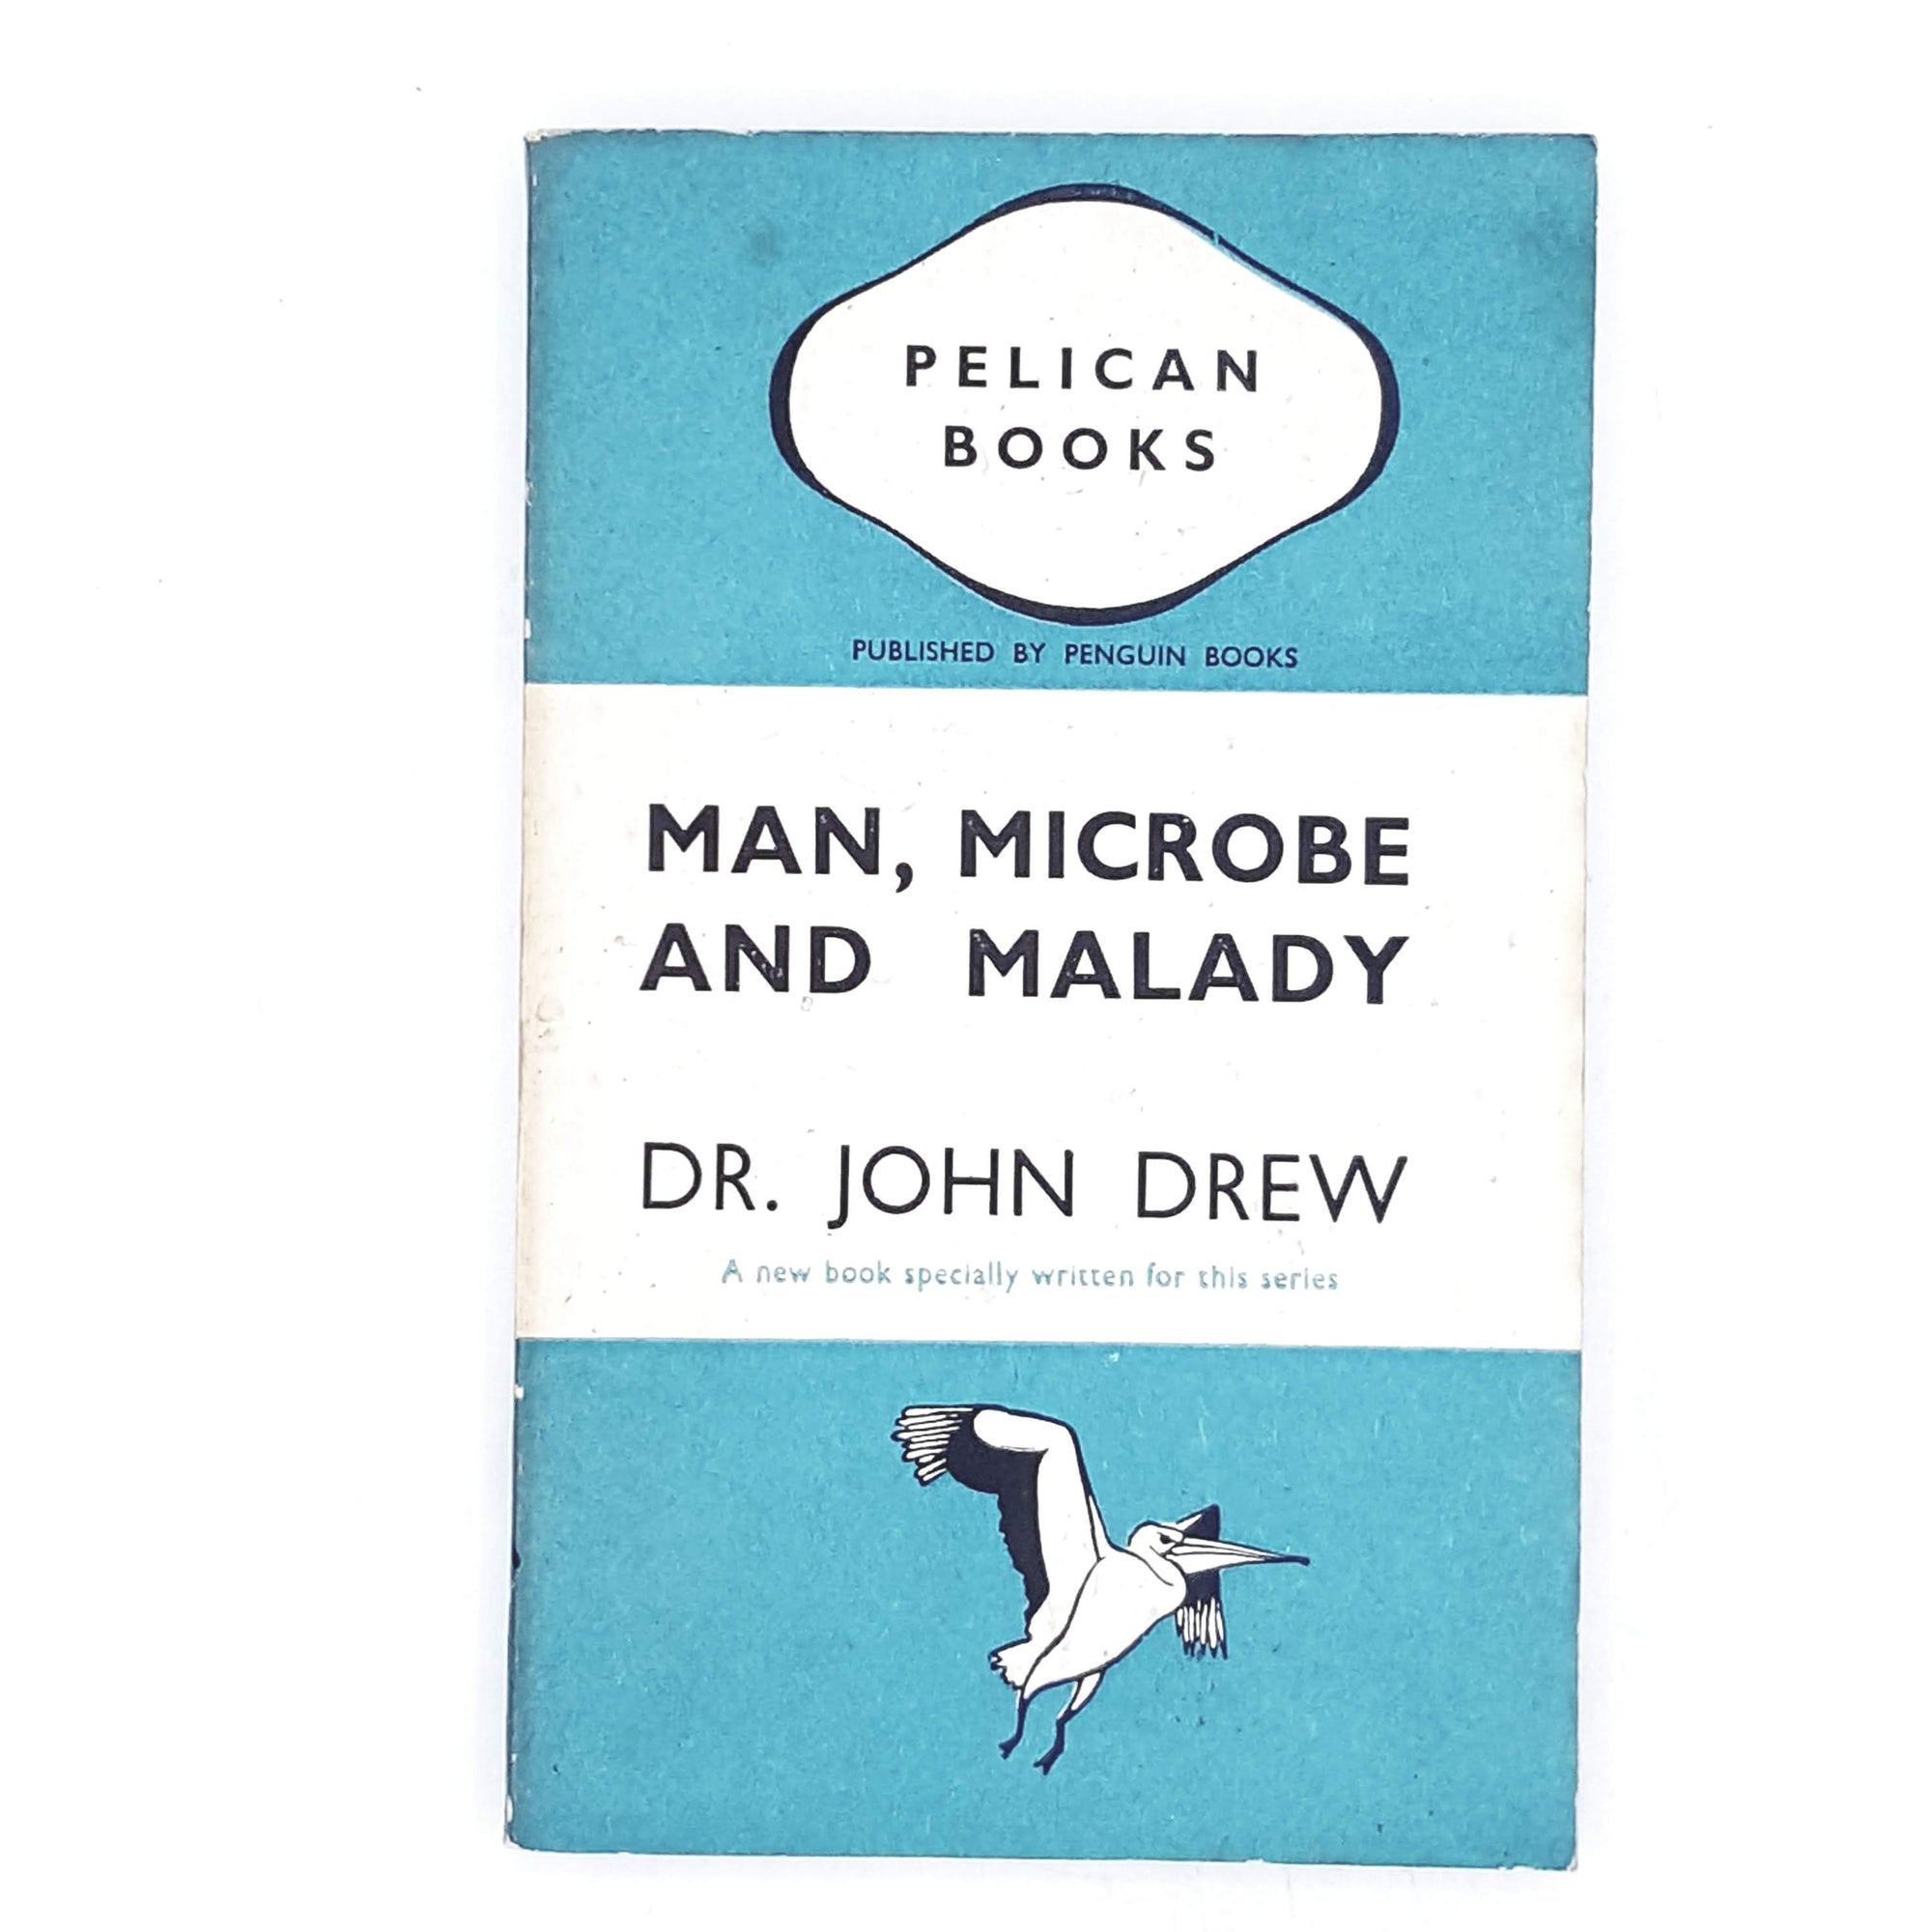 Man, Microbe and Malady by Dr. John Drew 1940